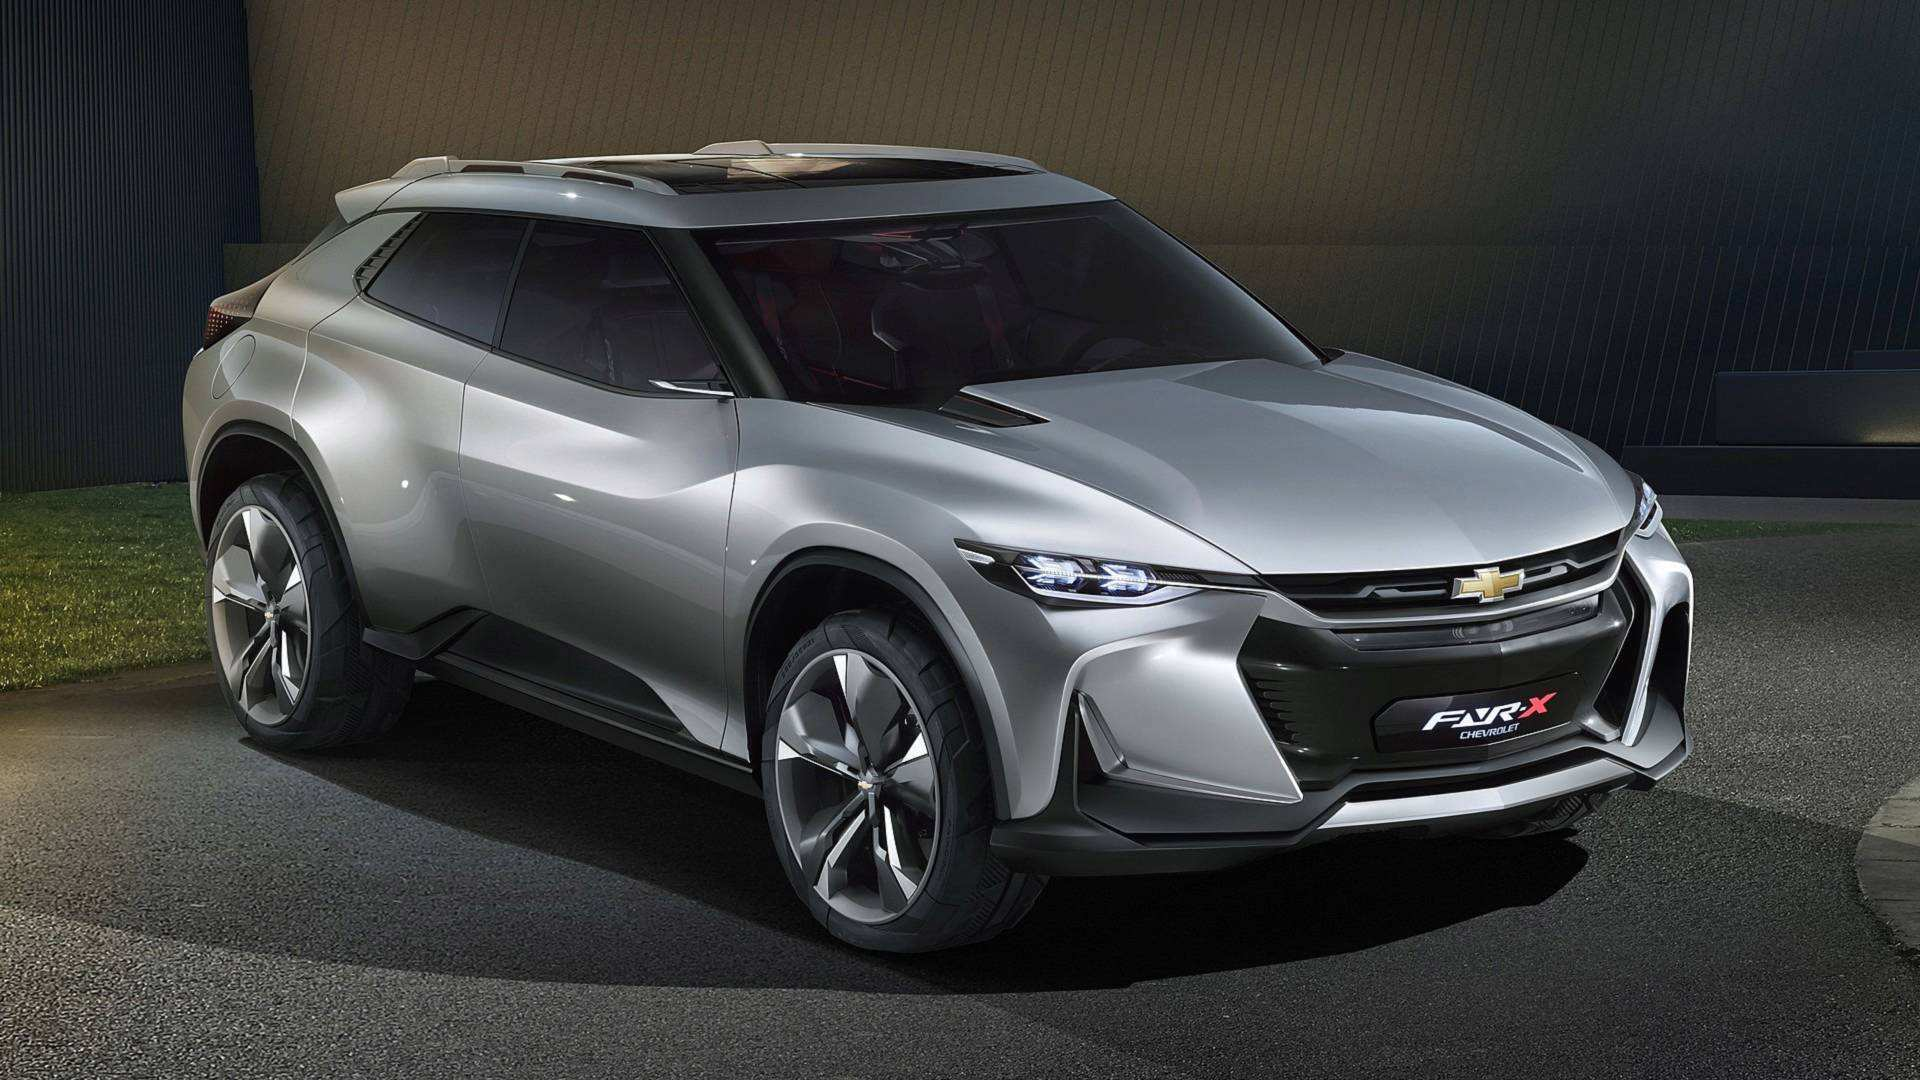 57 All New 2020 Chevrolet Lineup Exterior with 2020 Chevrolet Lineup